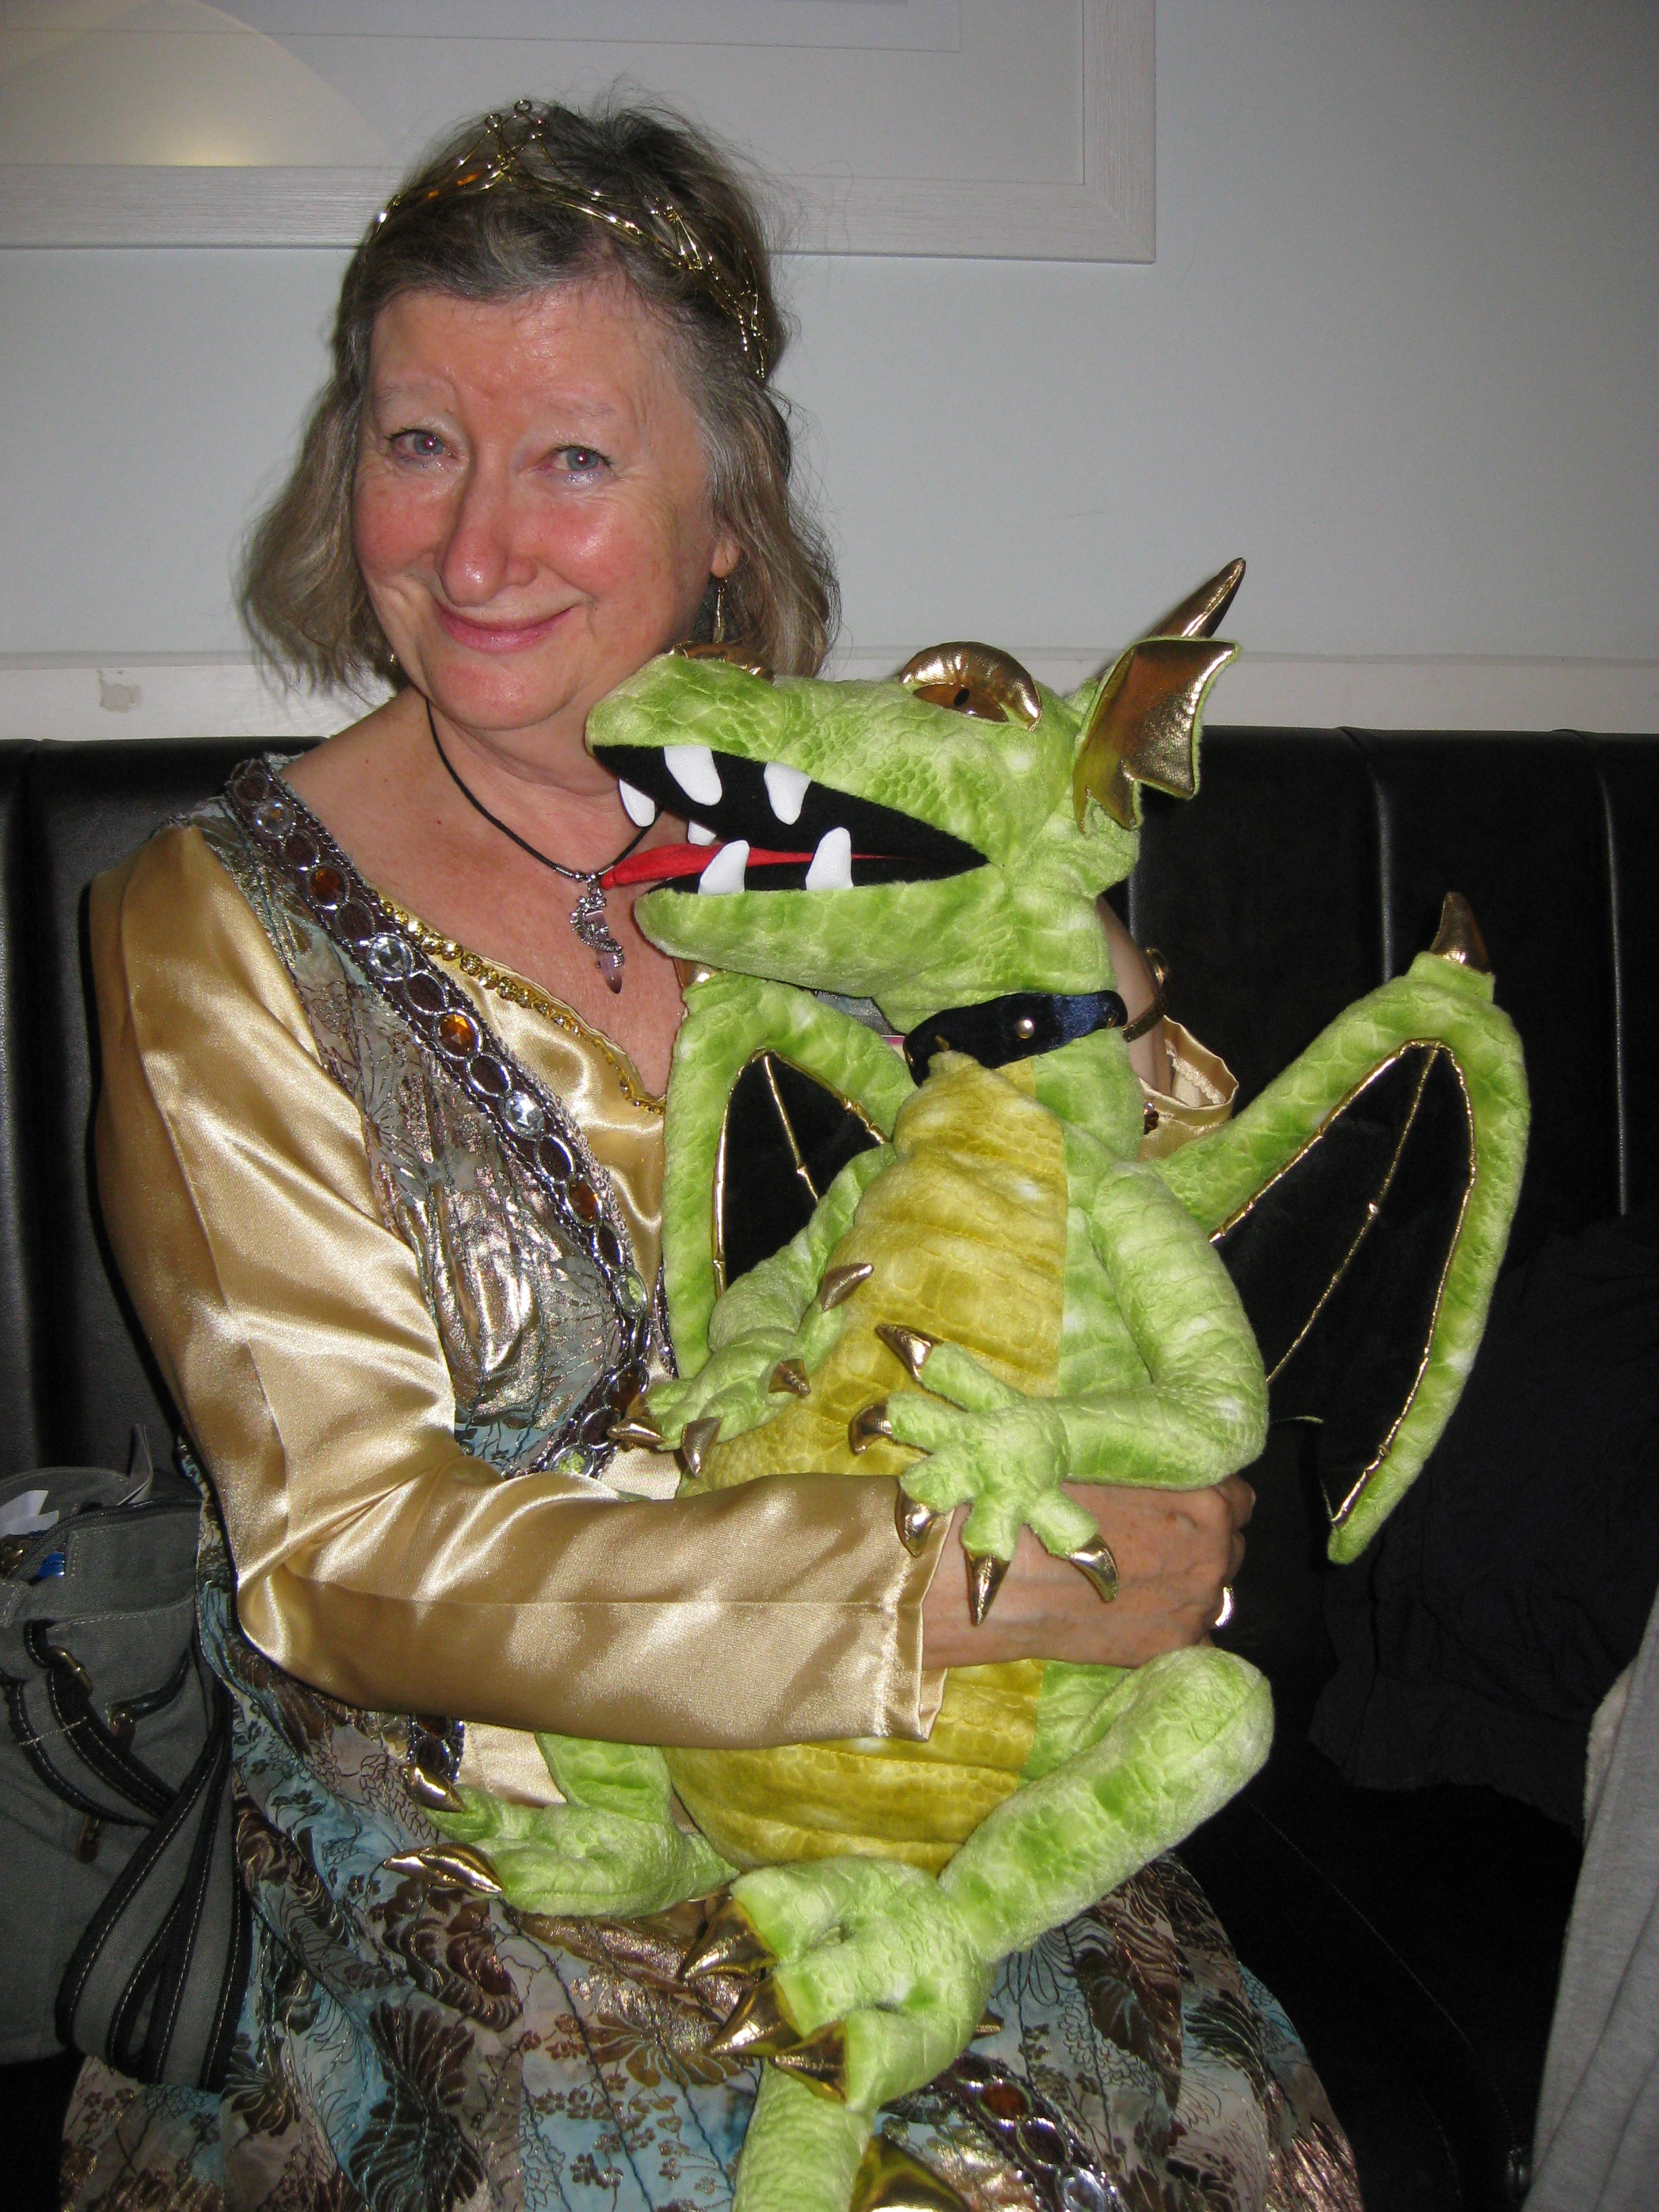 Patricia with Dragon friend